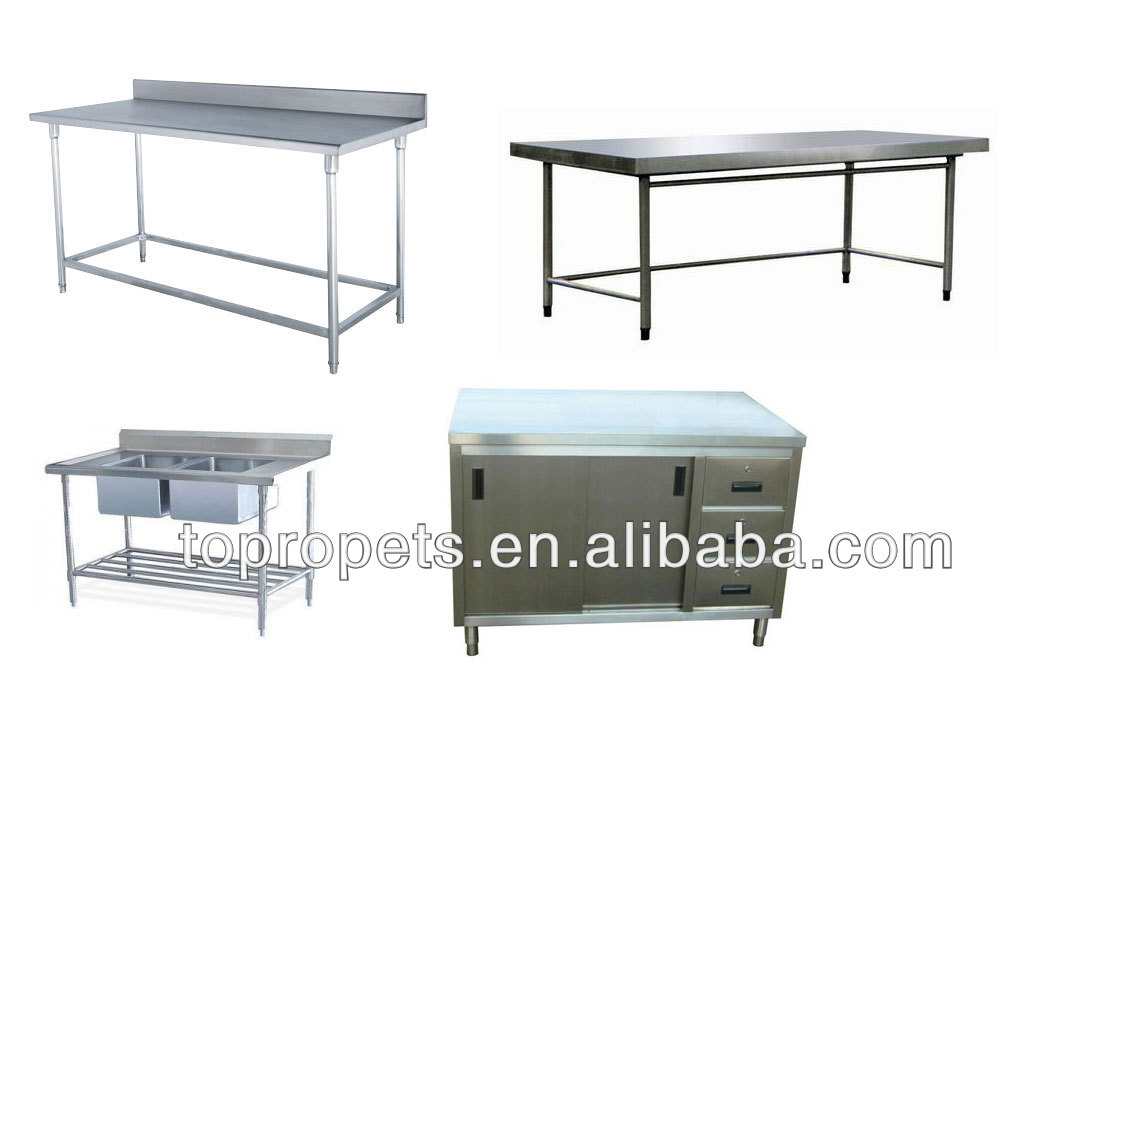 custom-made various kinds of stainless steel table, stainless steel wortable,stainless steel cabinet